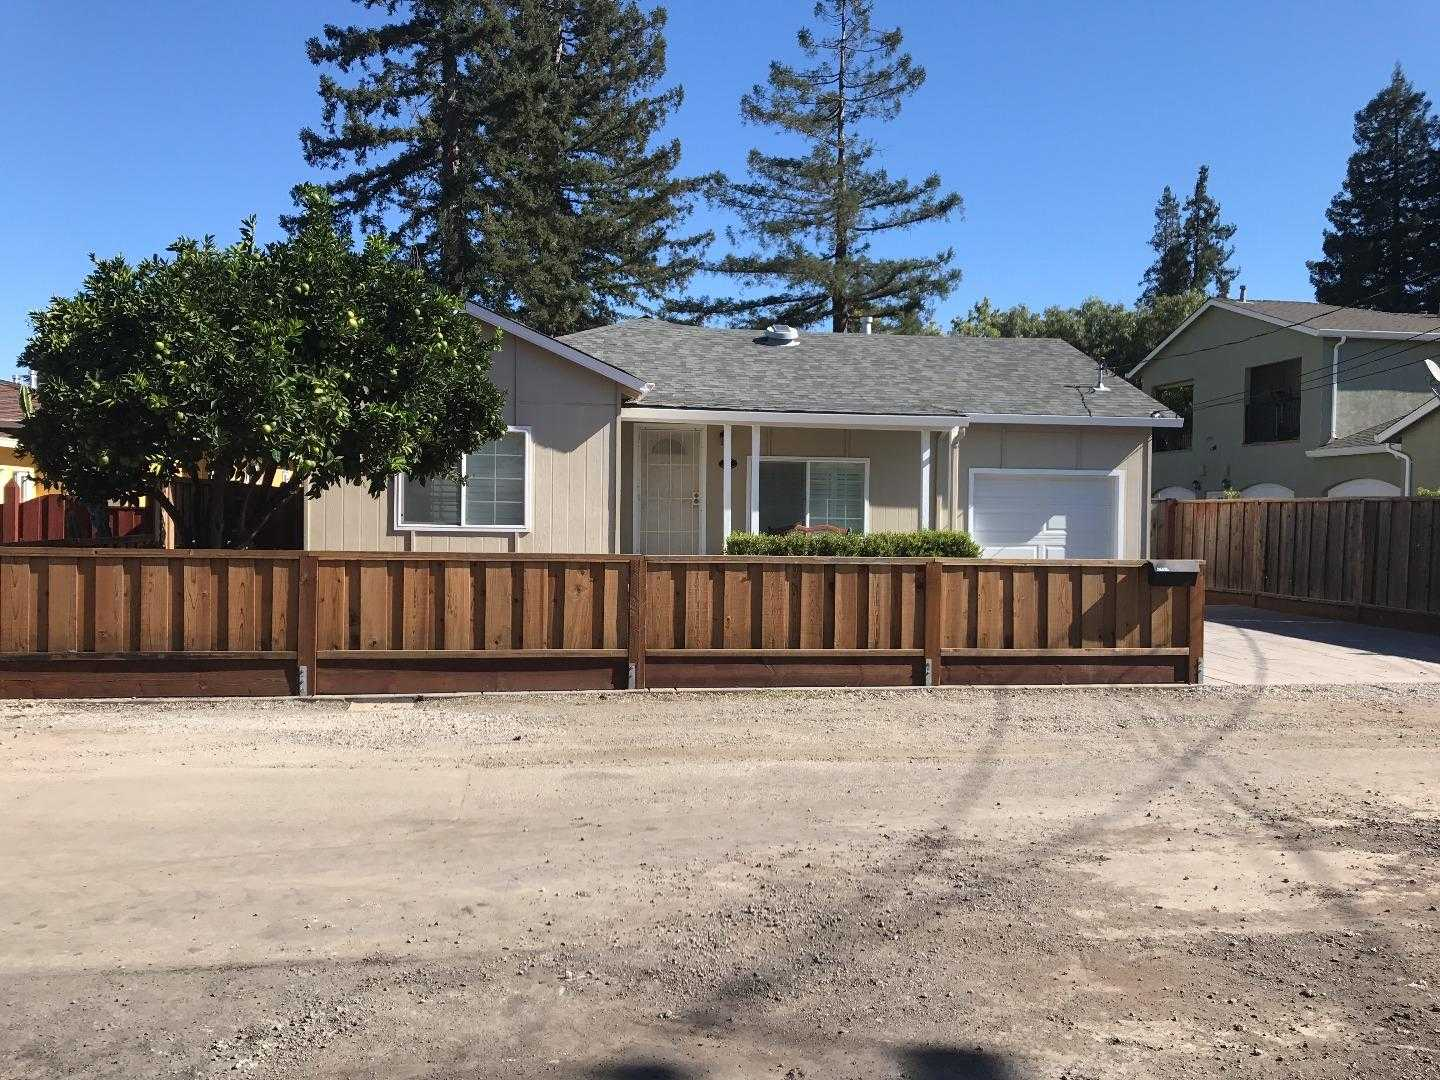 $1,350,000 - 3Br/2Ba -  for Sale in Redwood City